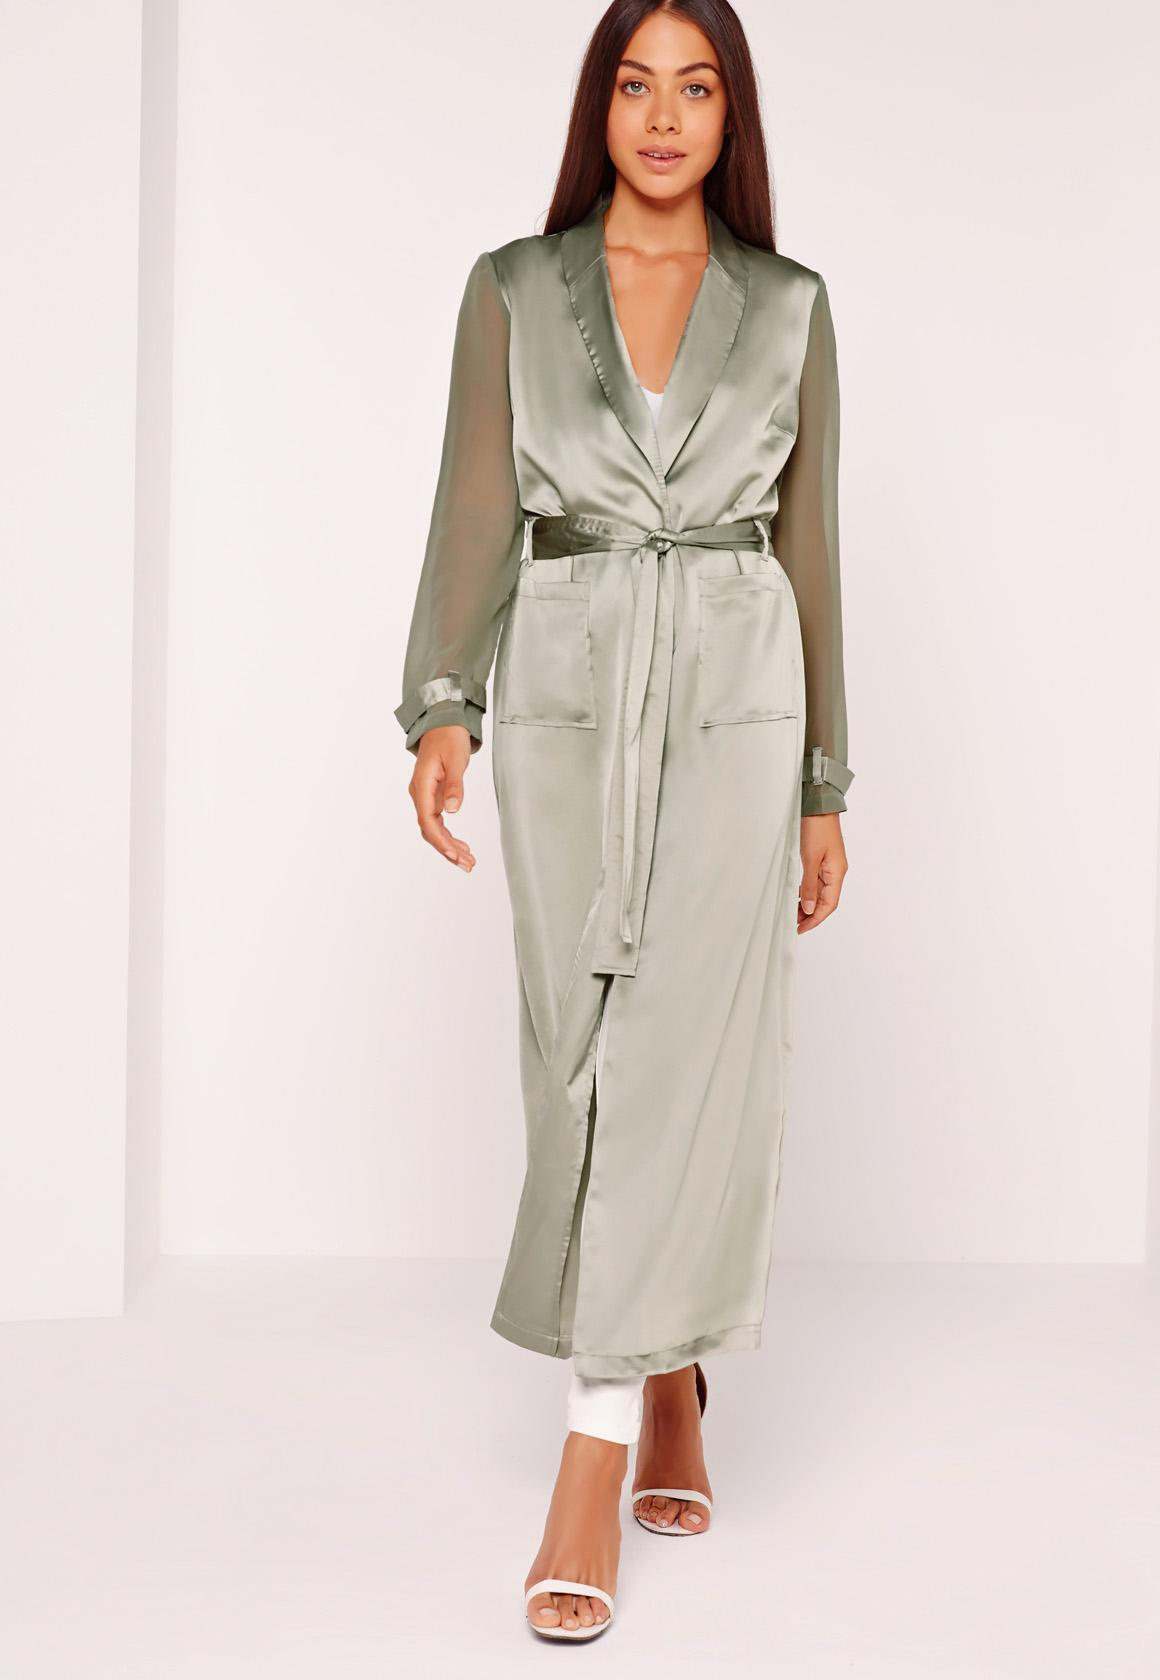 Two Tone Satin Chiffon Belted Duster Coat Green | Missguided